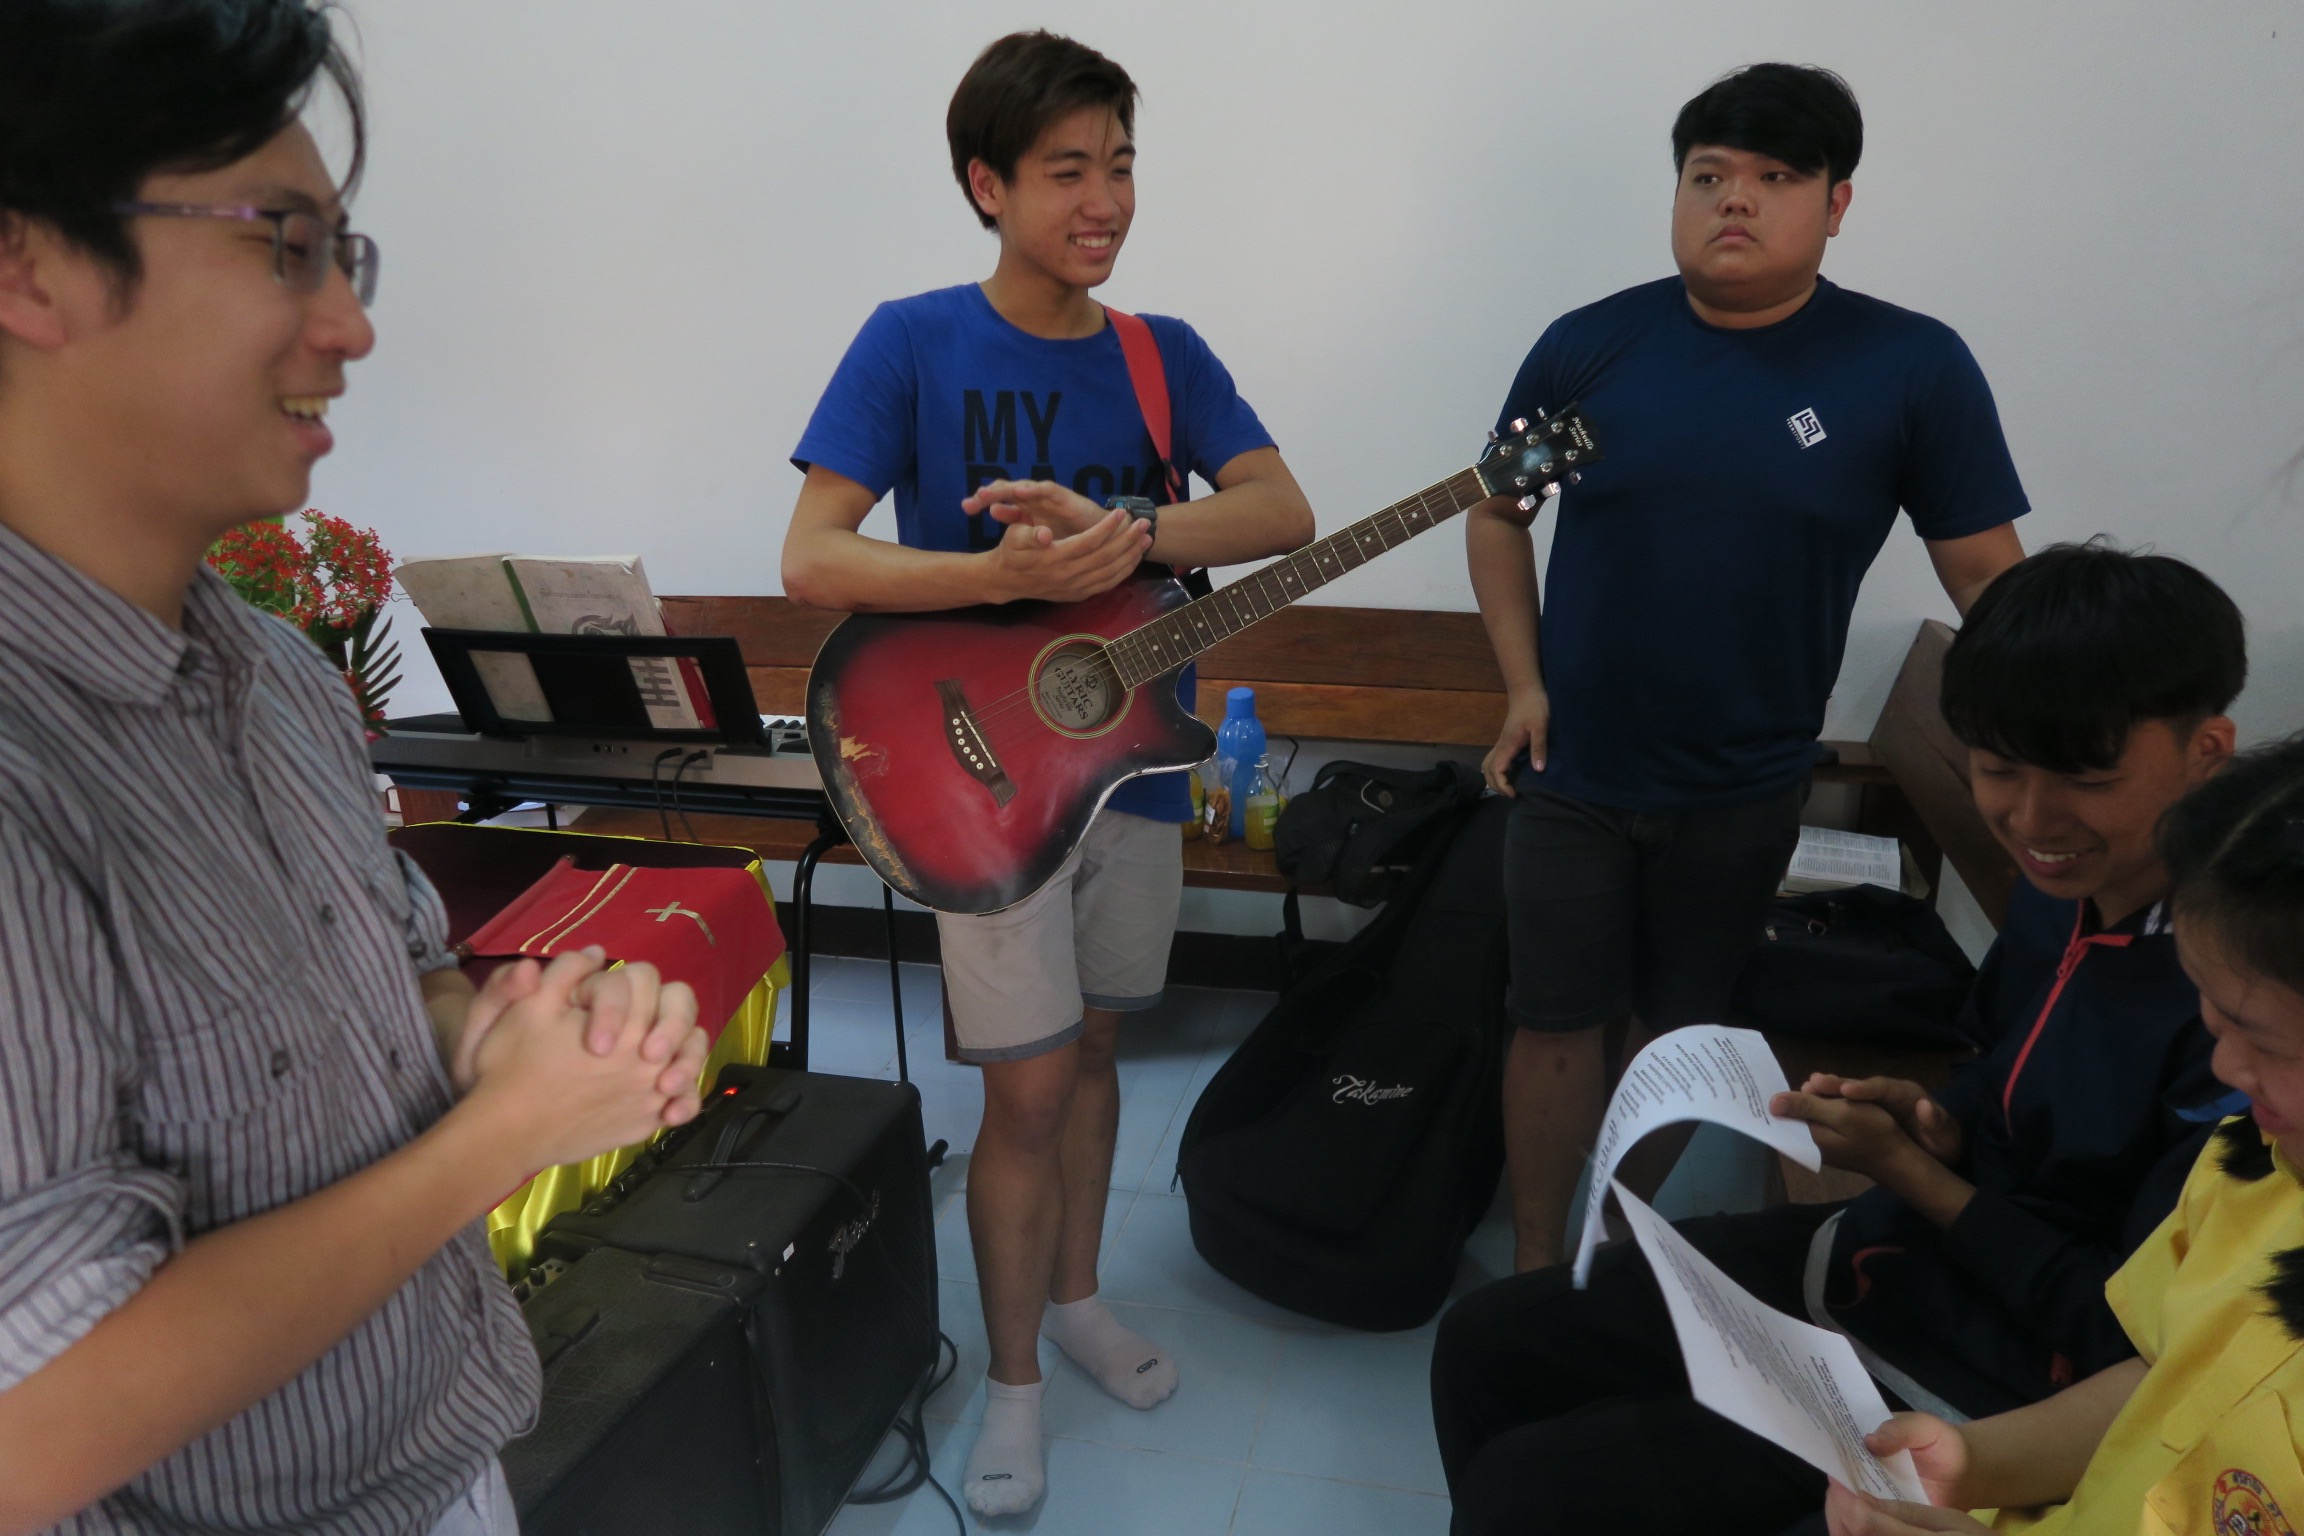 Teaching a song to a youth at a church.